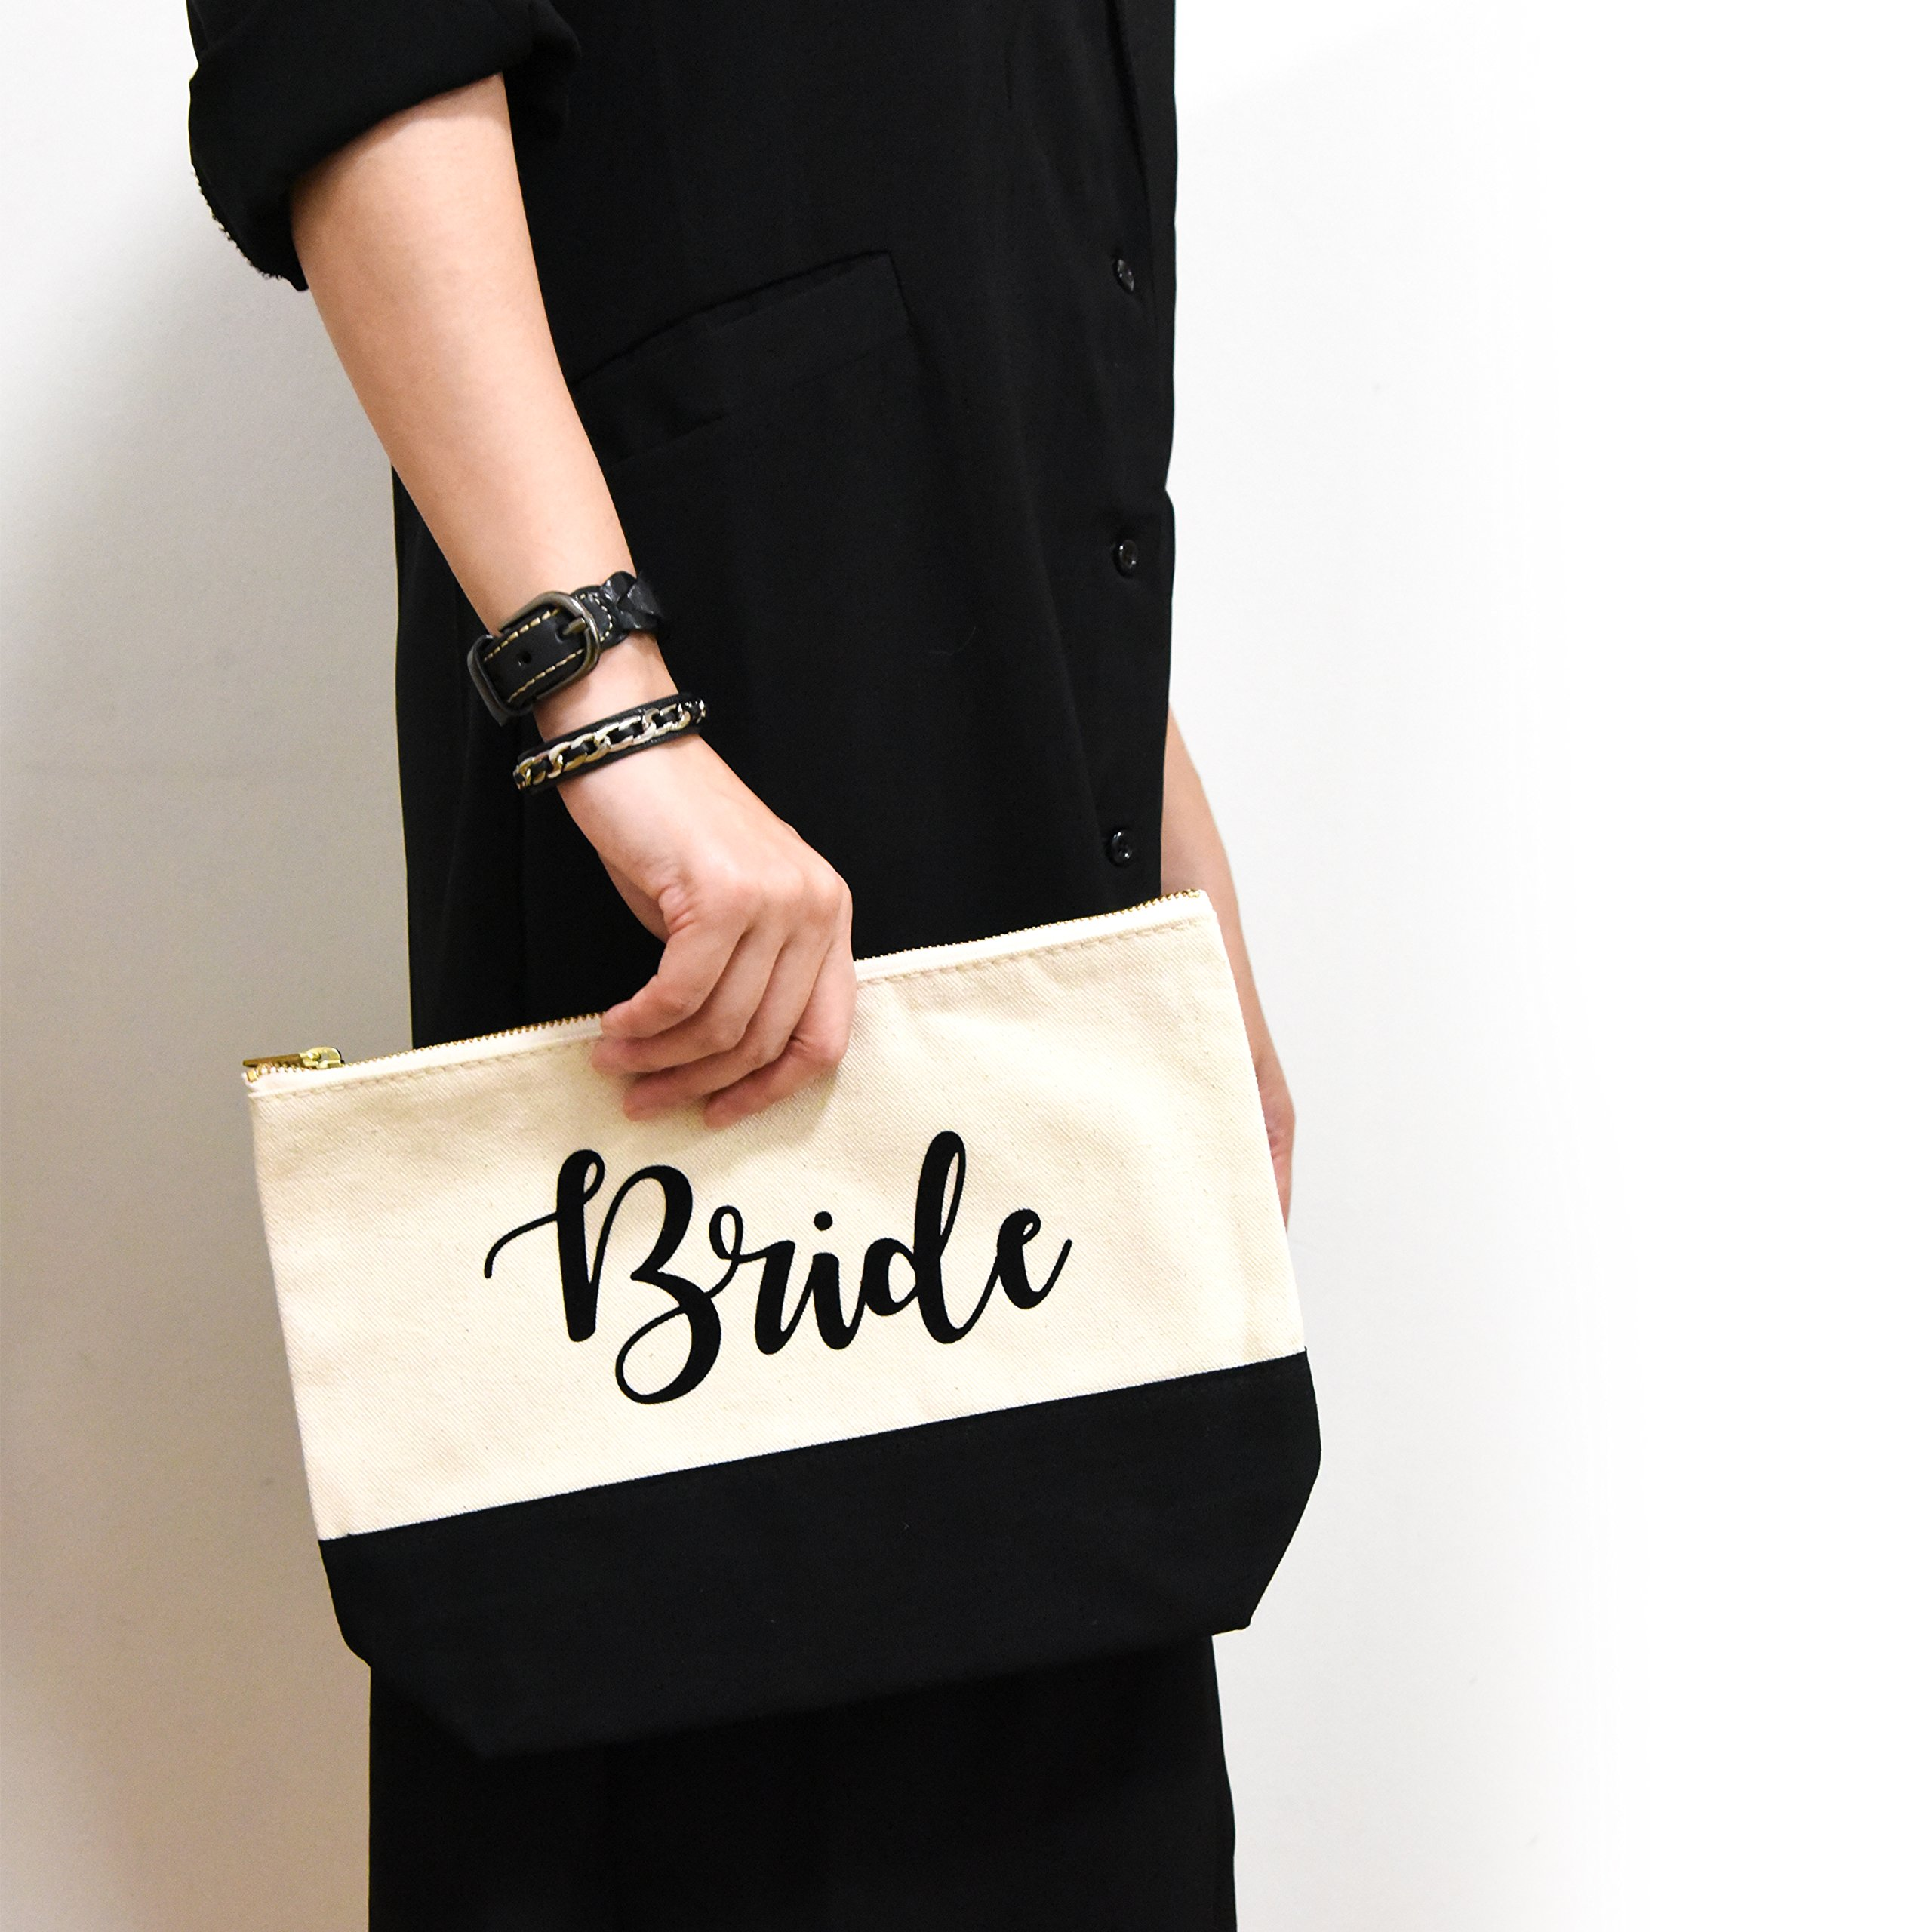 PumPumpz Personalized Gifts Wedding ''Bride'' Large Canvas Travel YKK Zipper Makeup Bag.''Which arrive you within 5 days'' (Bride Black) by PumPumpz (Image #4)